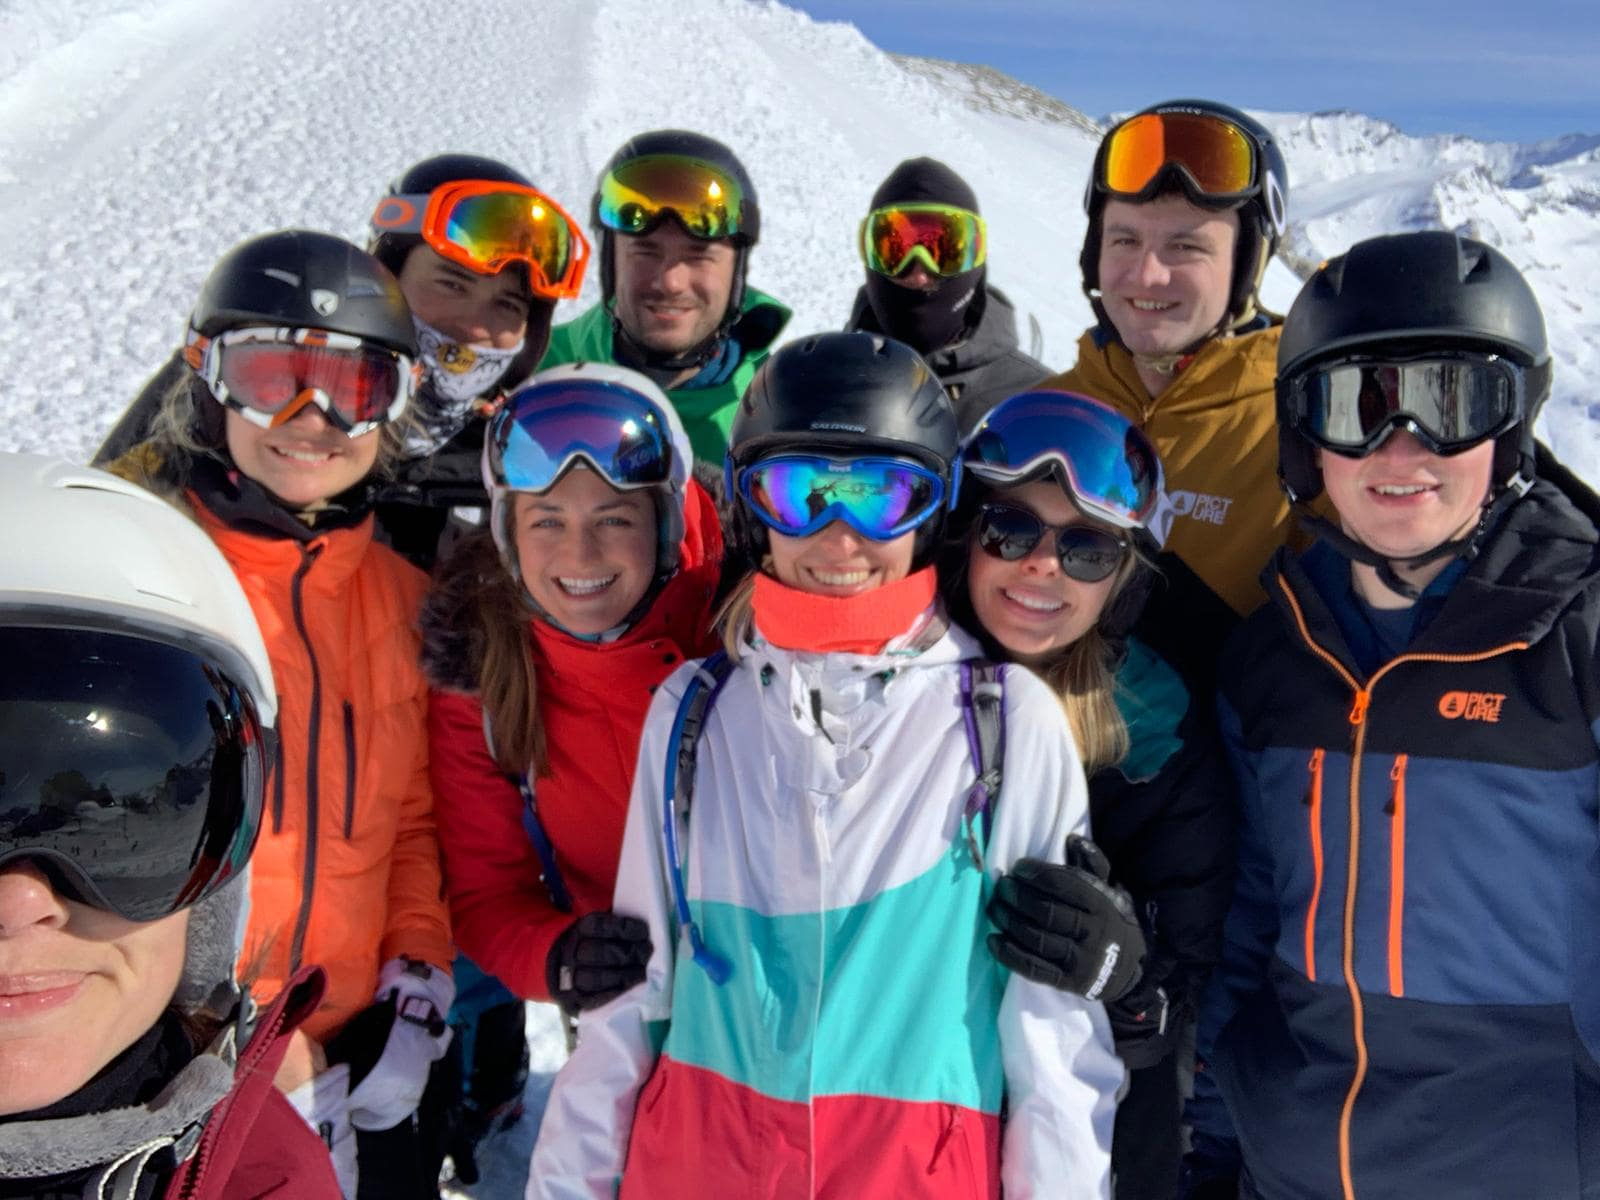 friends on a ski holiday